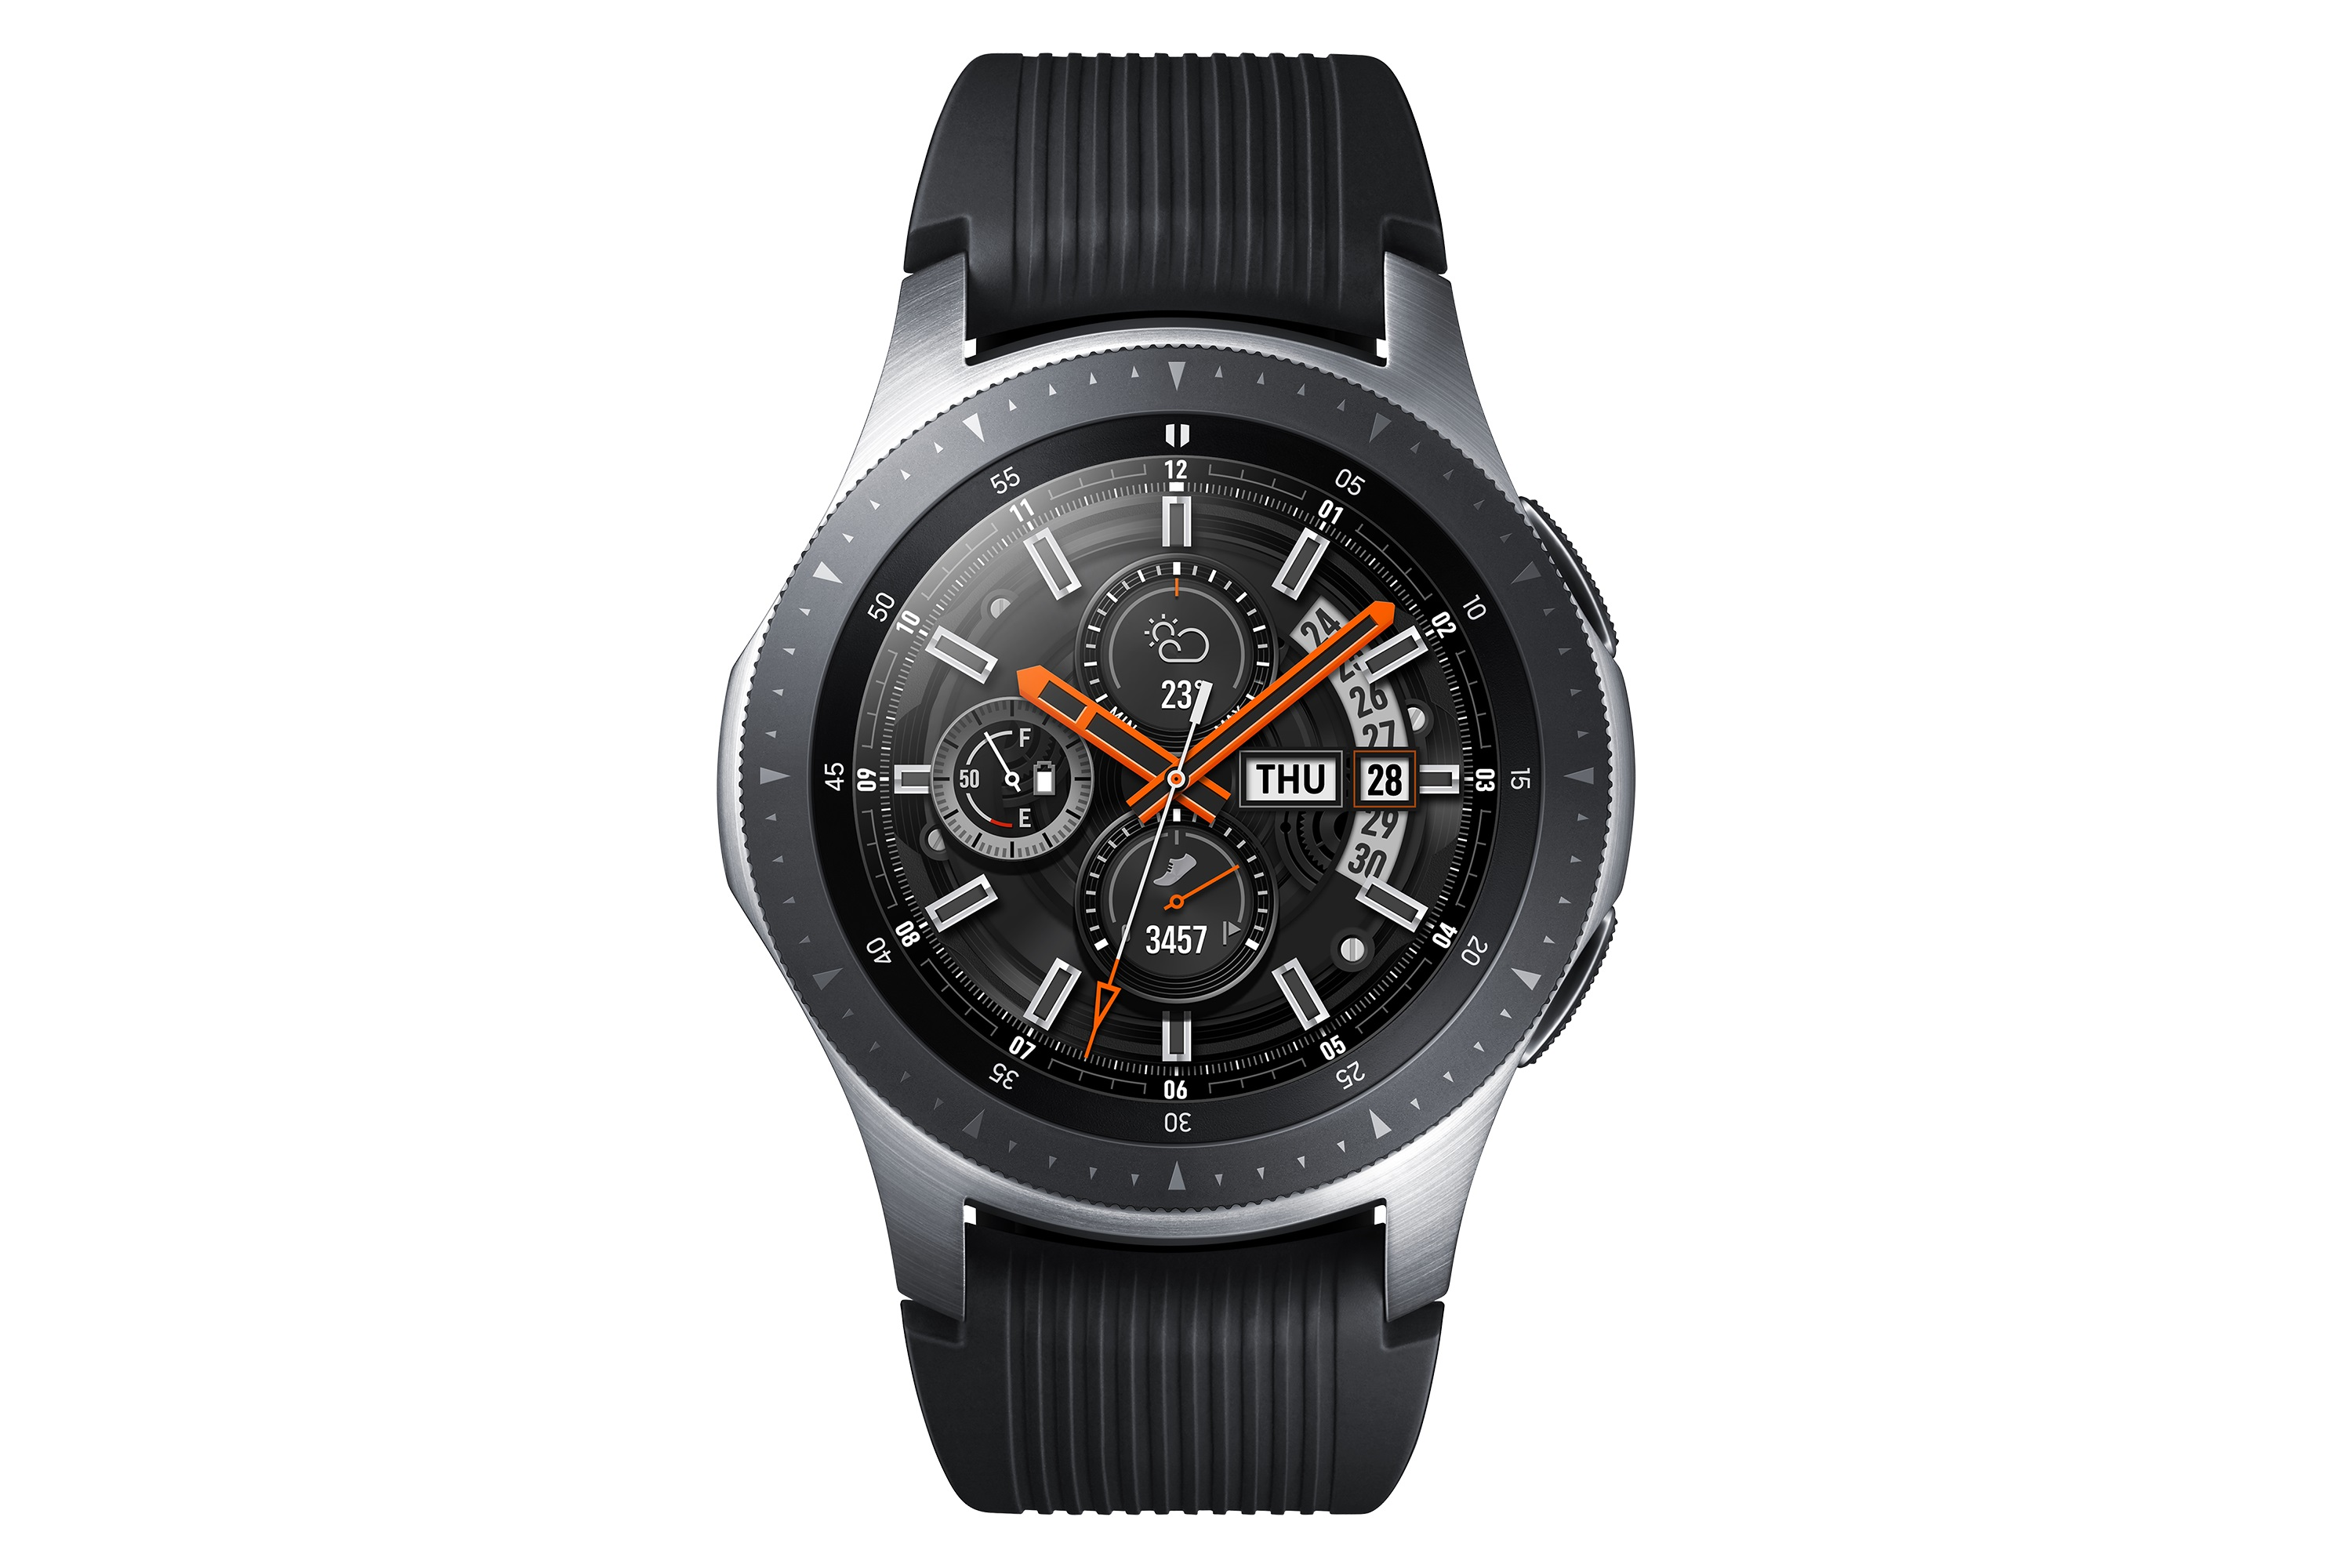 Samsung Galaxy Watch Perspectiva Plateado Frontal